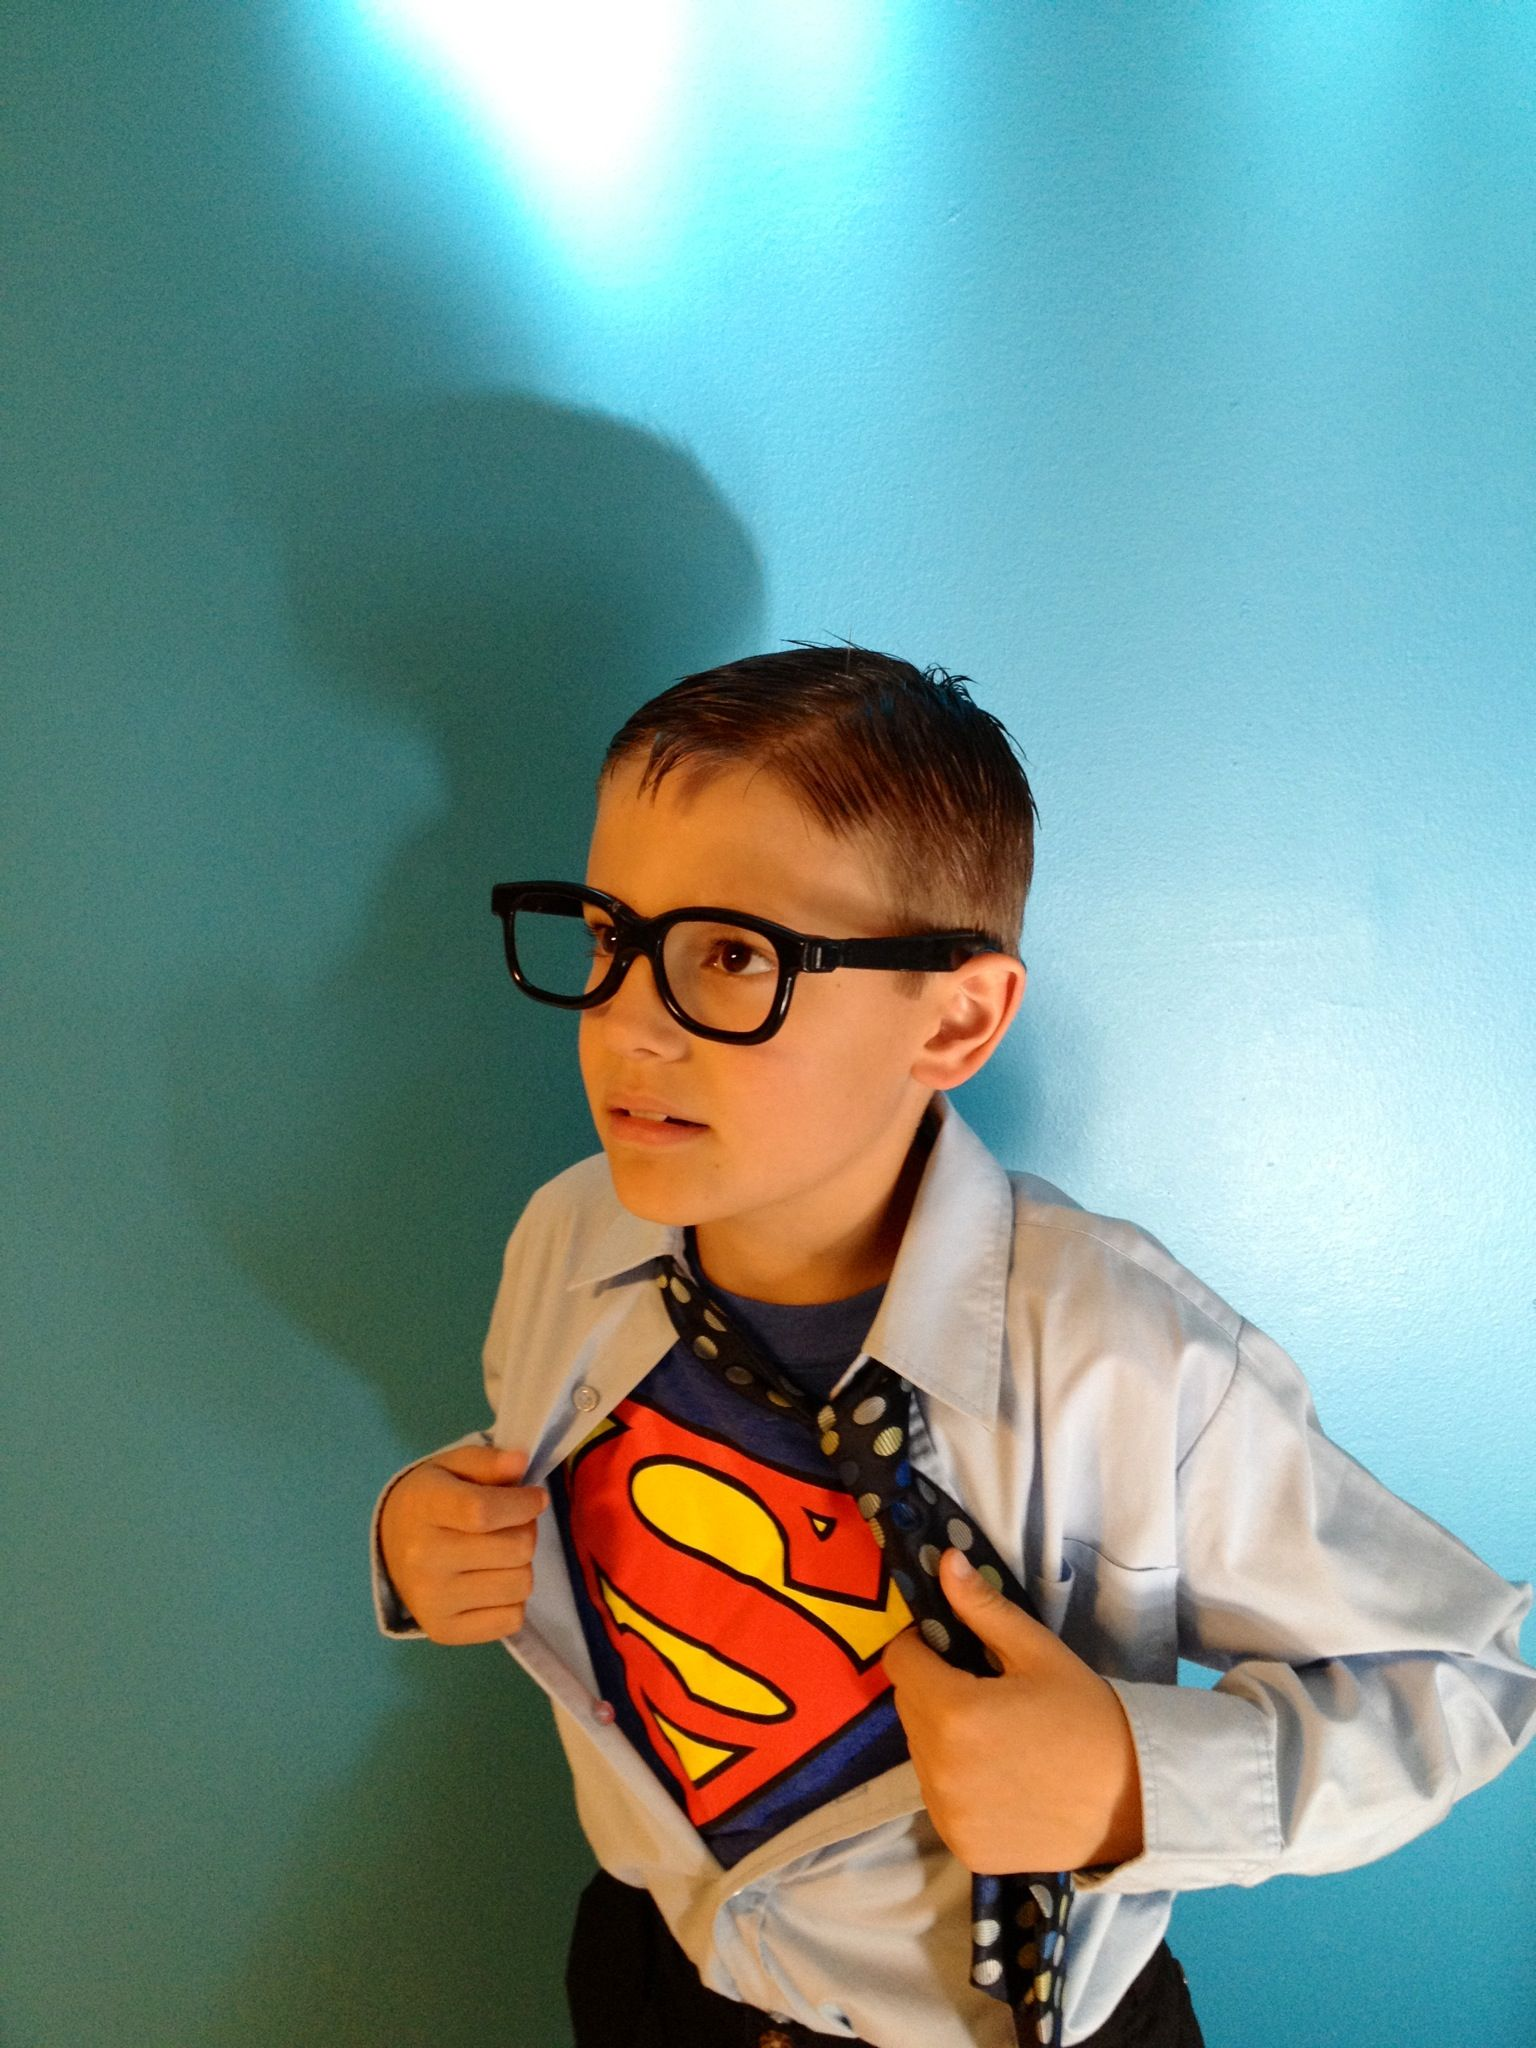 Clark Kent Halloween costume really cheap. With things you